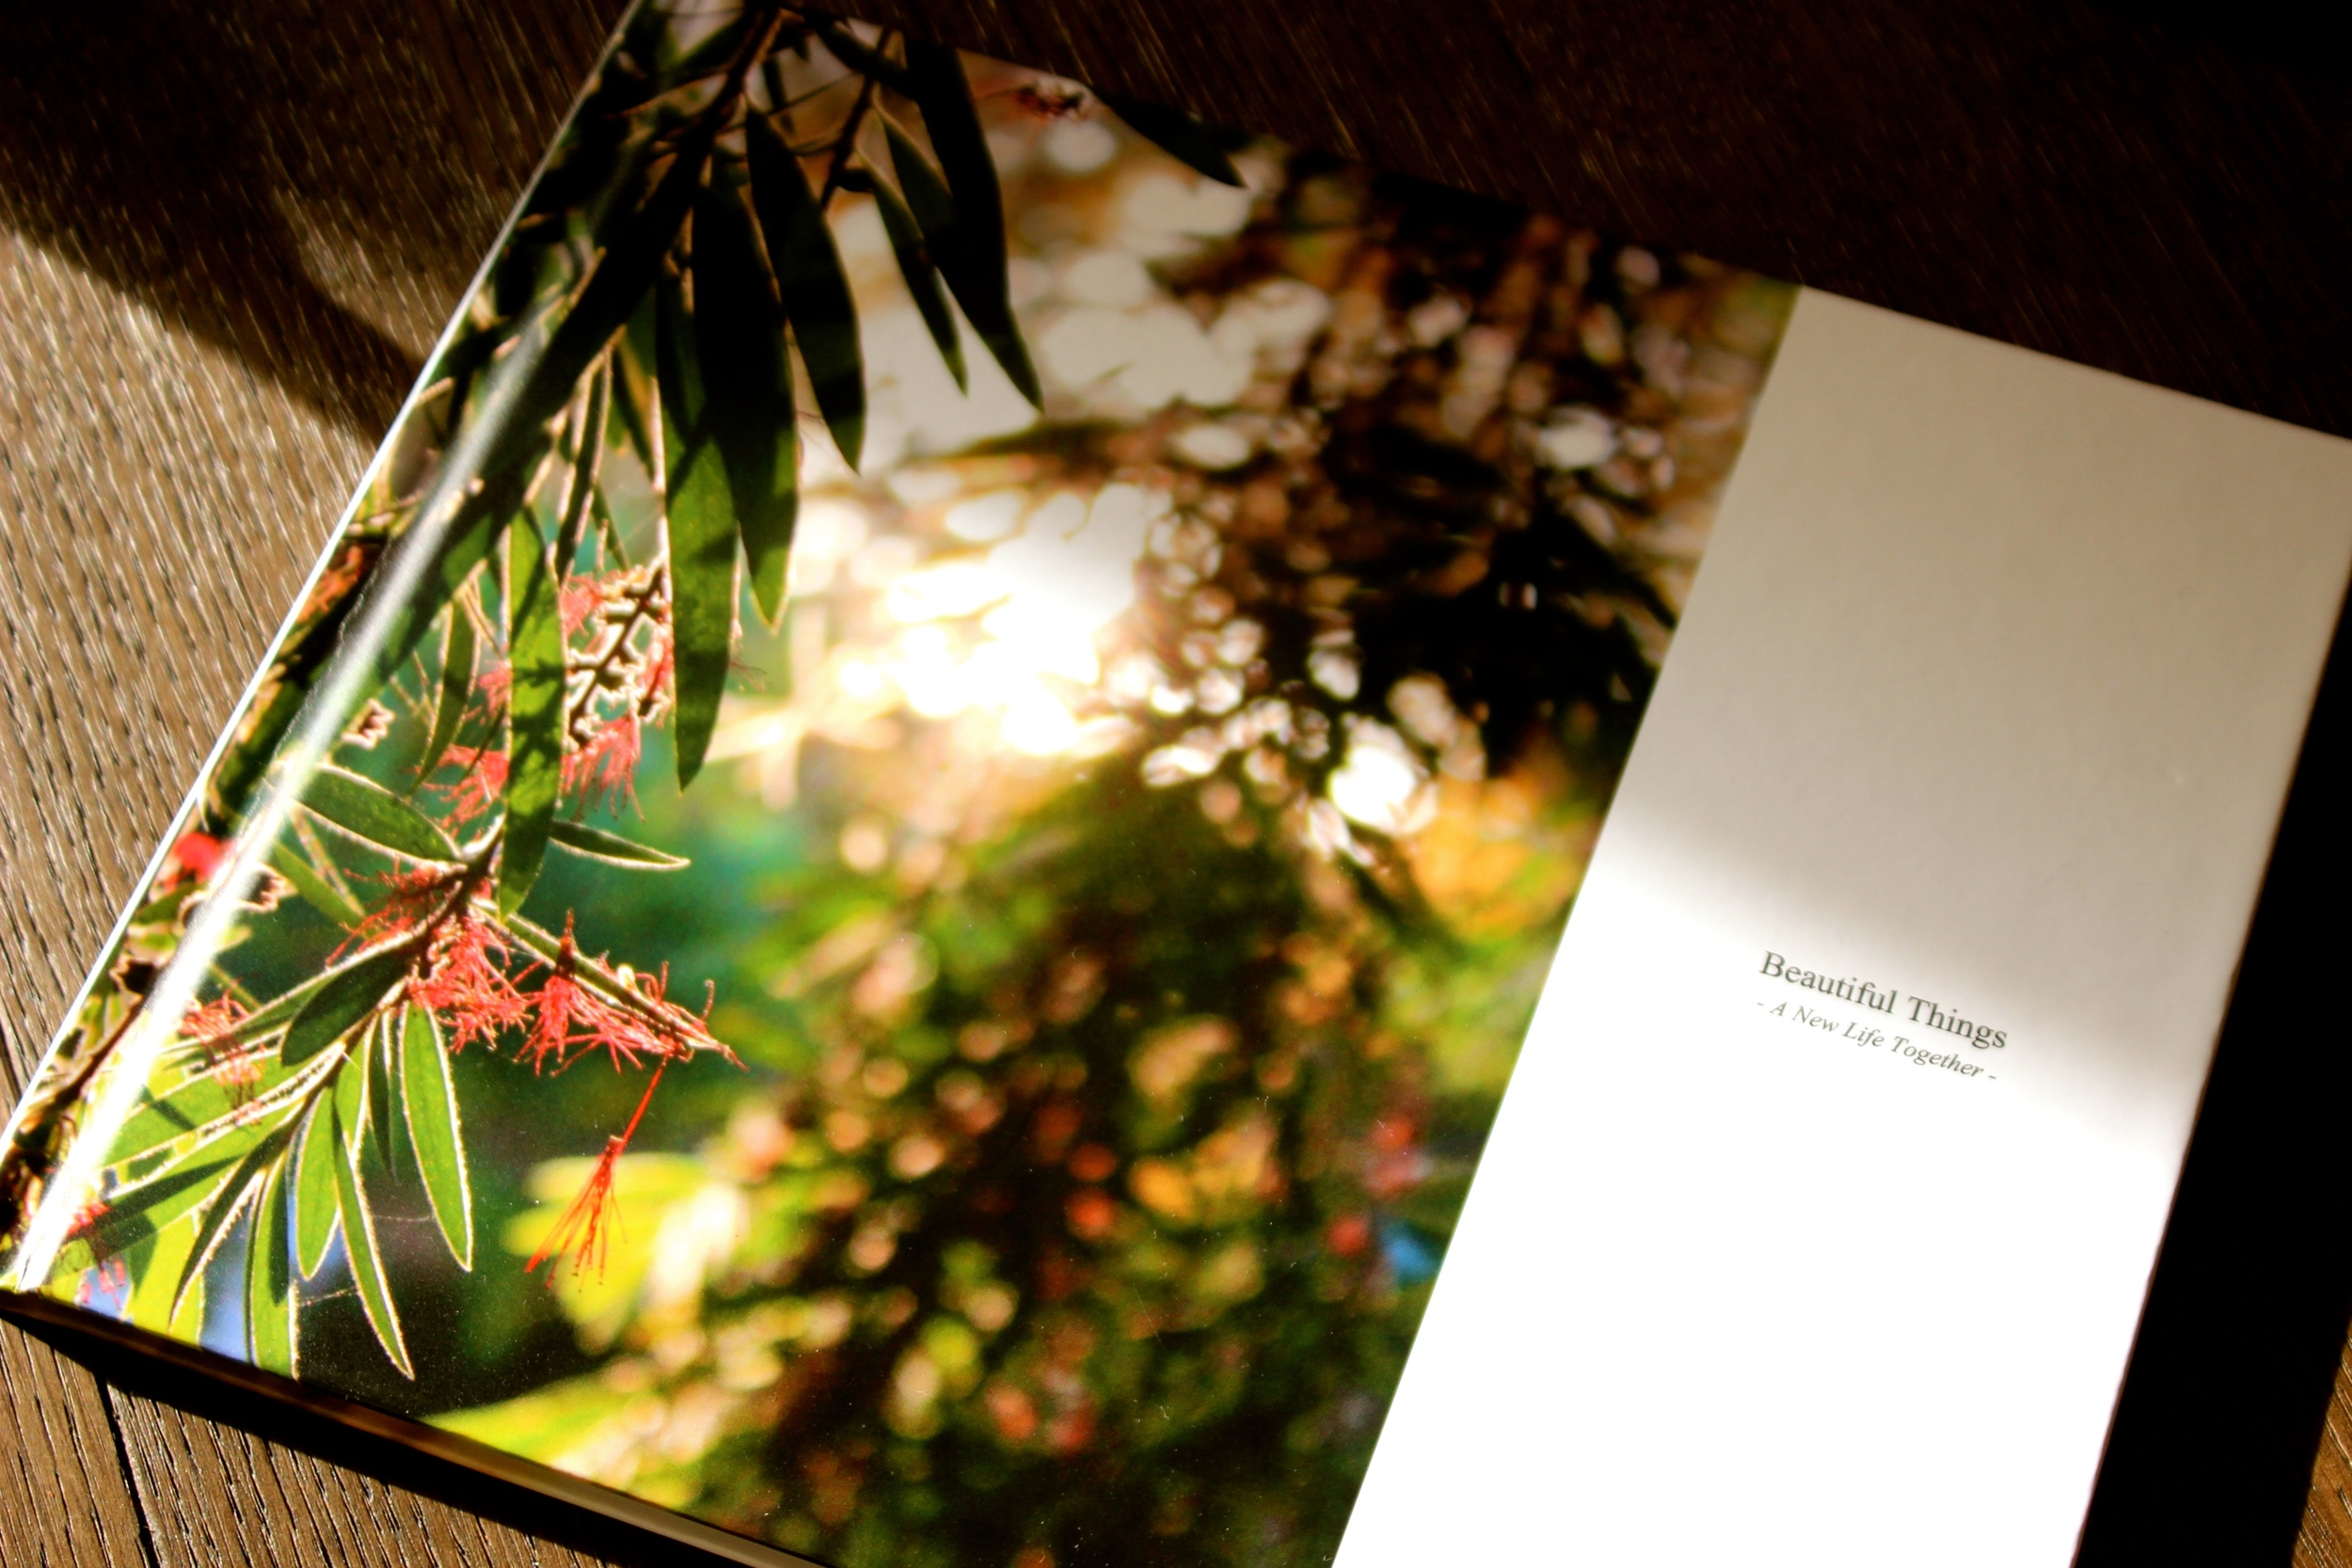 My second book; Beautiful Things ~ A New Life Together ~